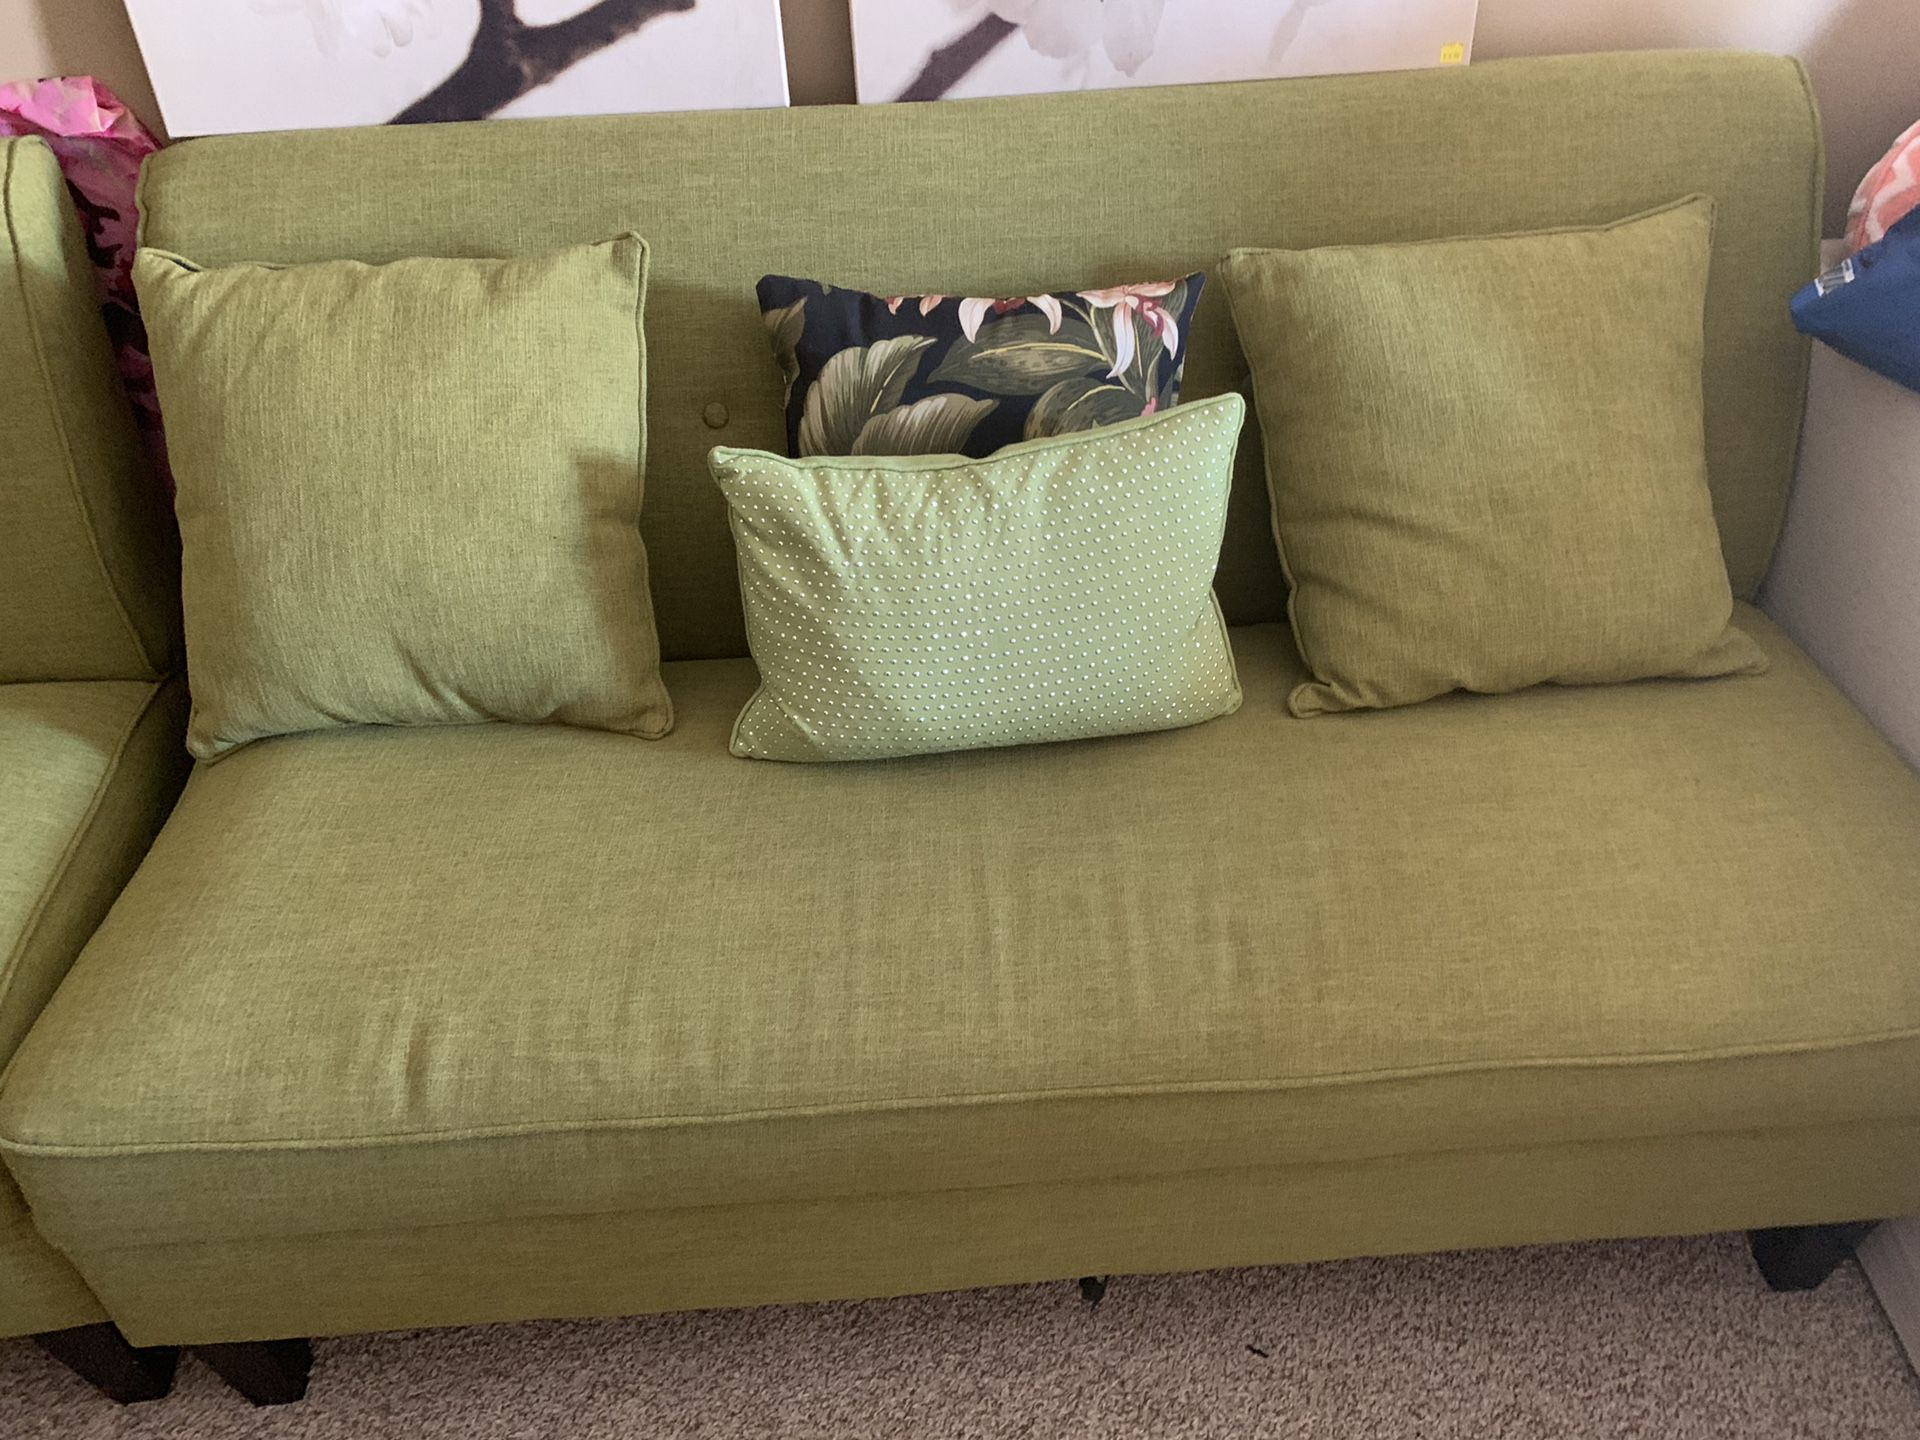 Tropical green sofa with matching chair and throw pillows